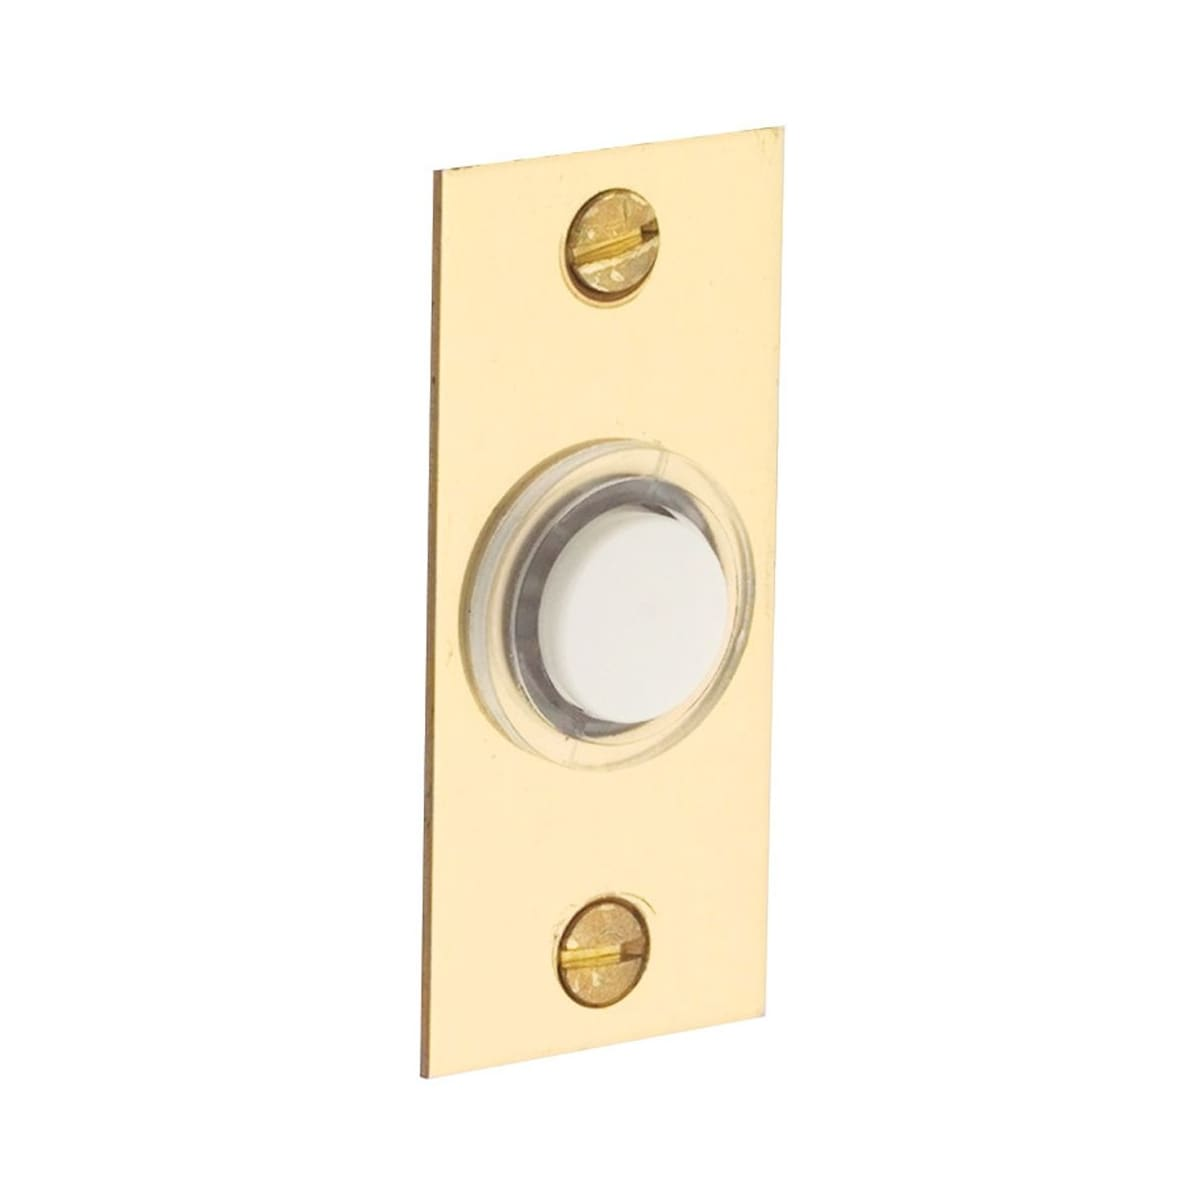 Baldwin 2-1/4 Inches x 1 Inch Rectangular Bell Button